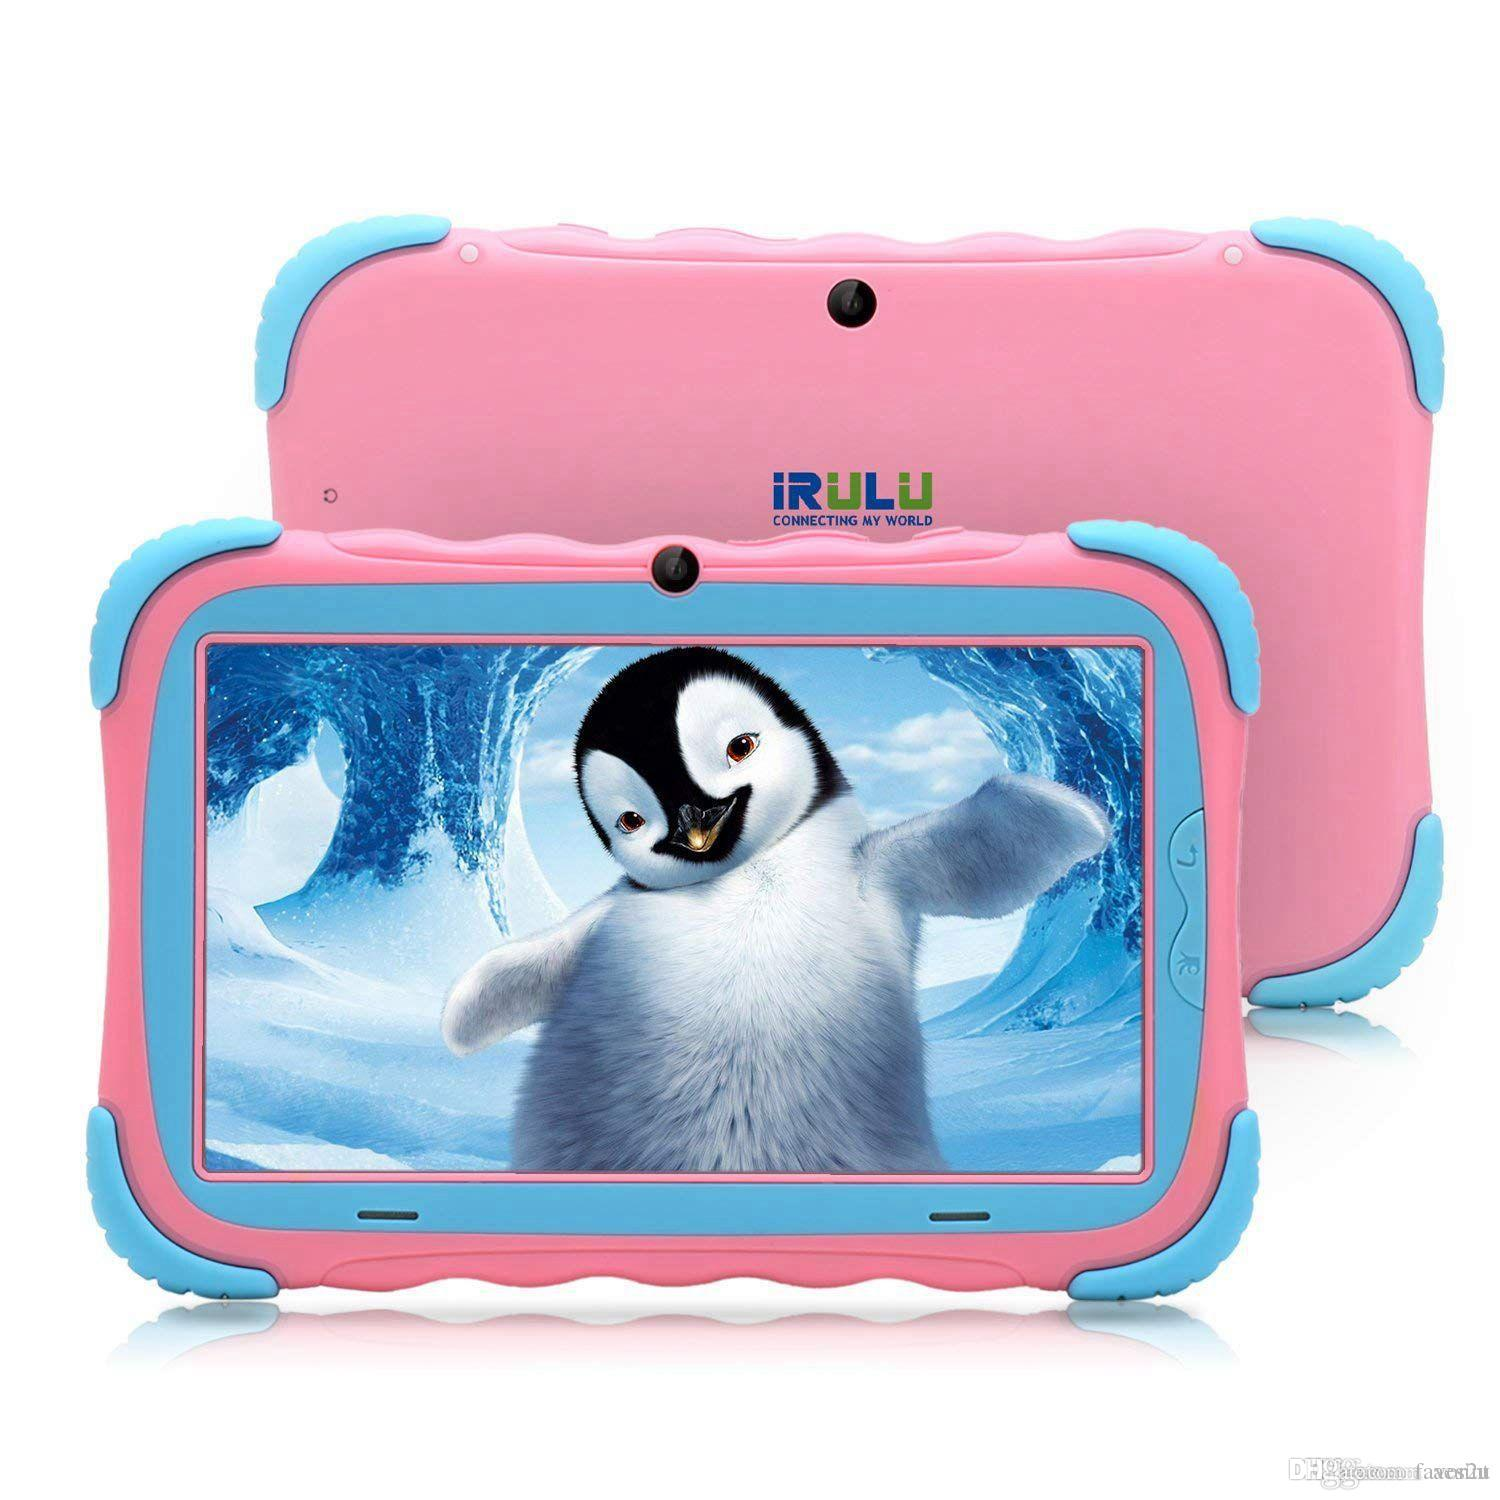 iRULU Kids Tablet 7 Inch HD Display Upgrade Y57 Babypad PC Andriod 7.1 with WiFi WiFi Bluetooth and Game GMS